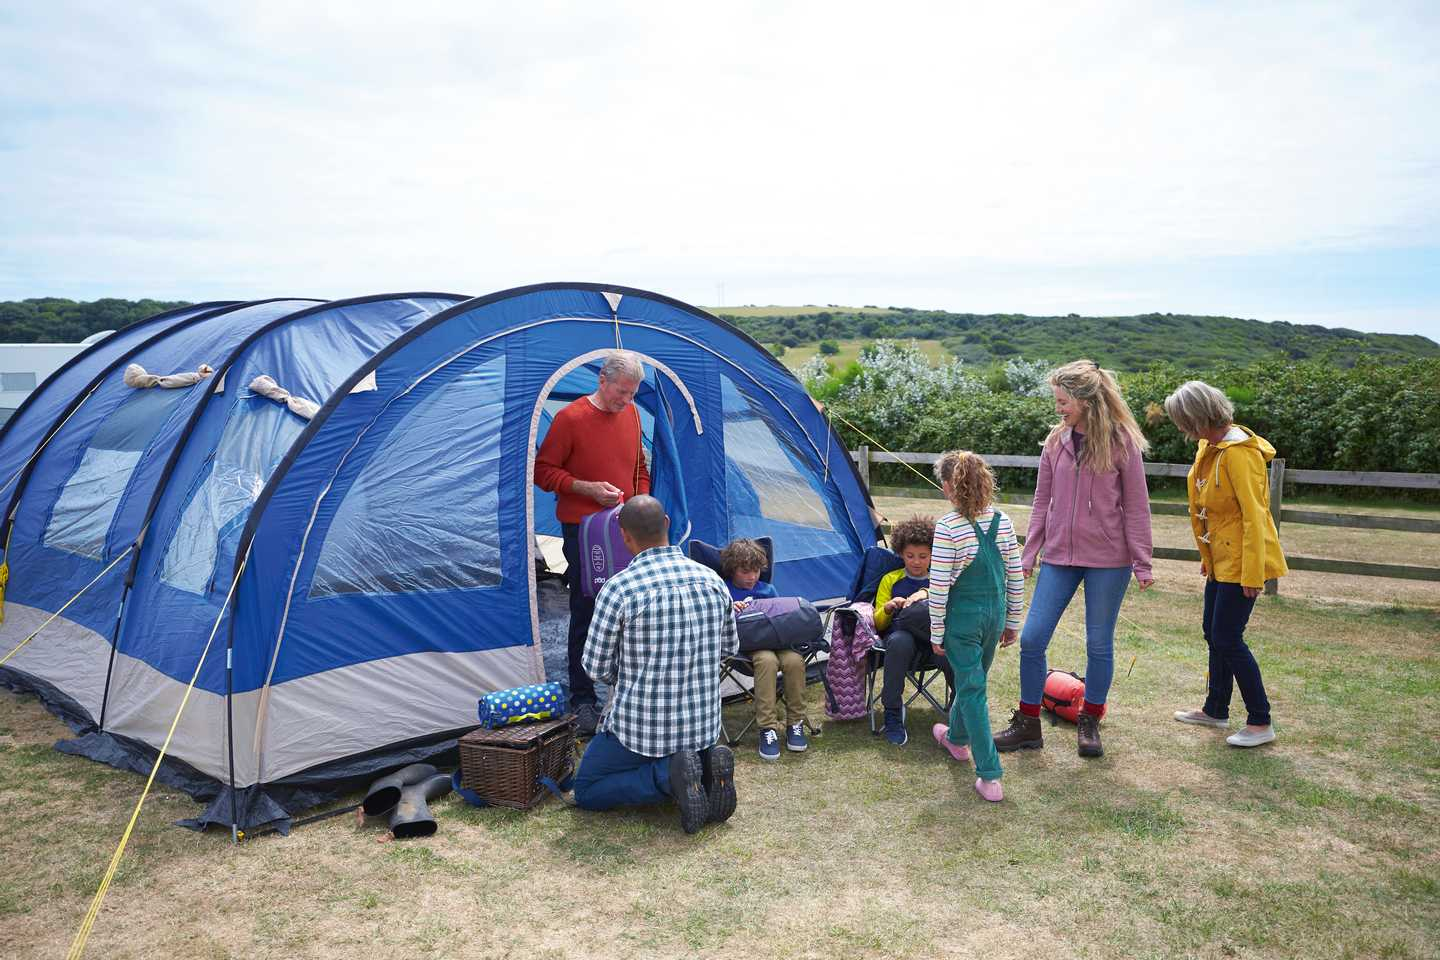 Guests putting up their tent at Littlesea